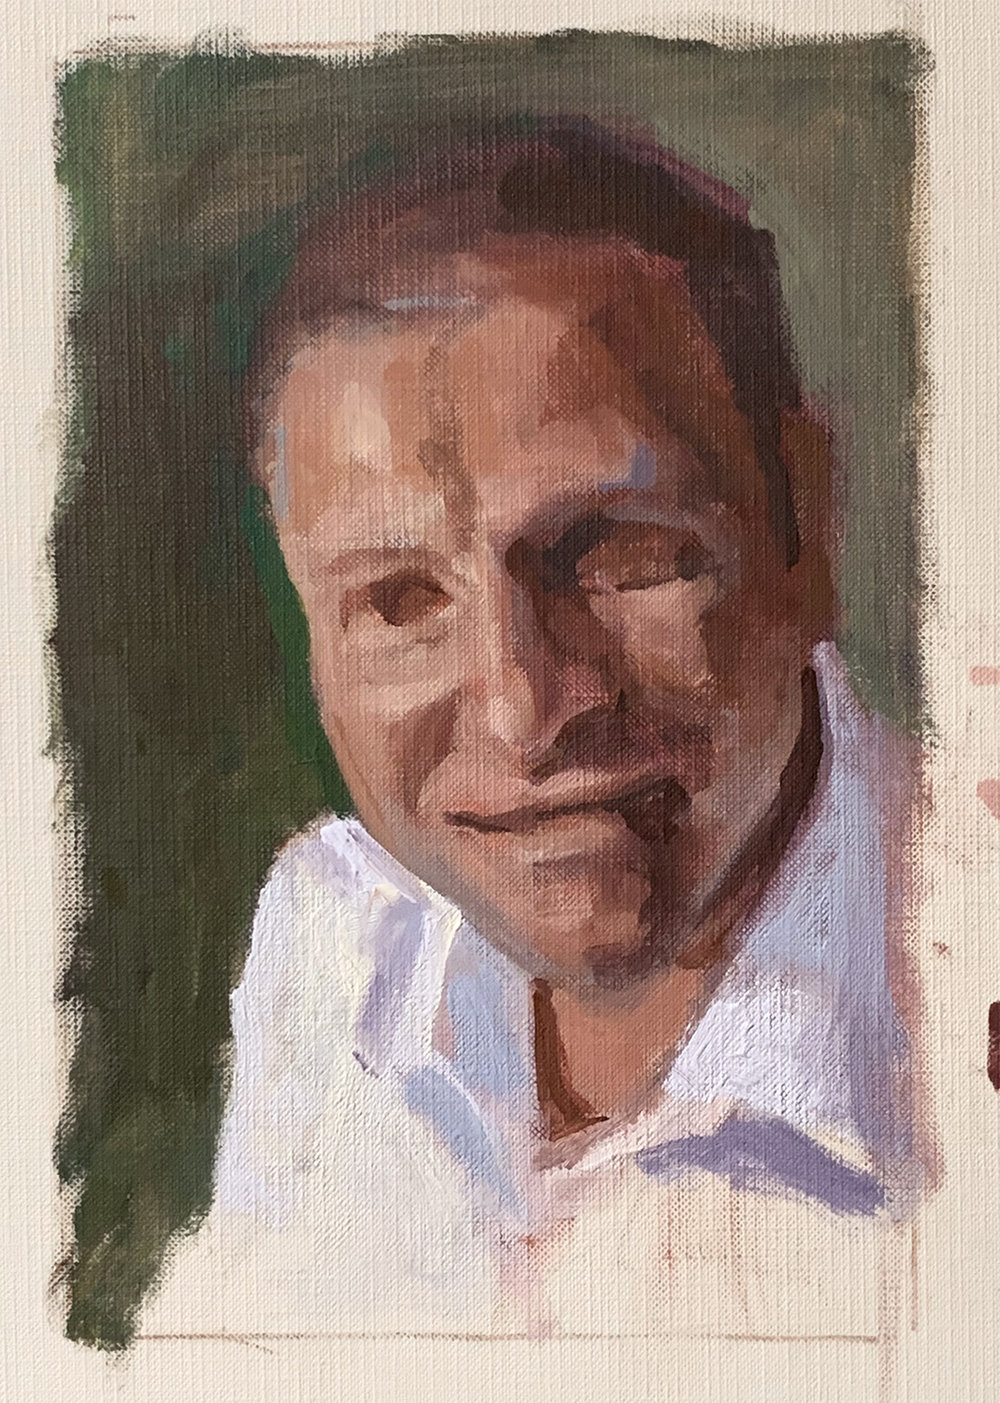 sketch 9 x 6 on Strathmore oil paper